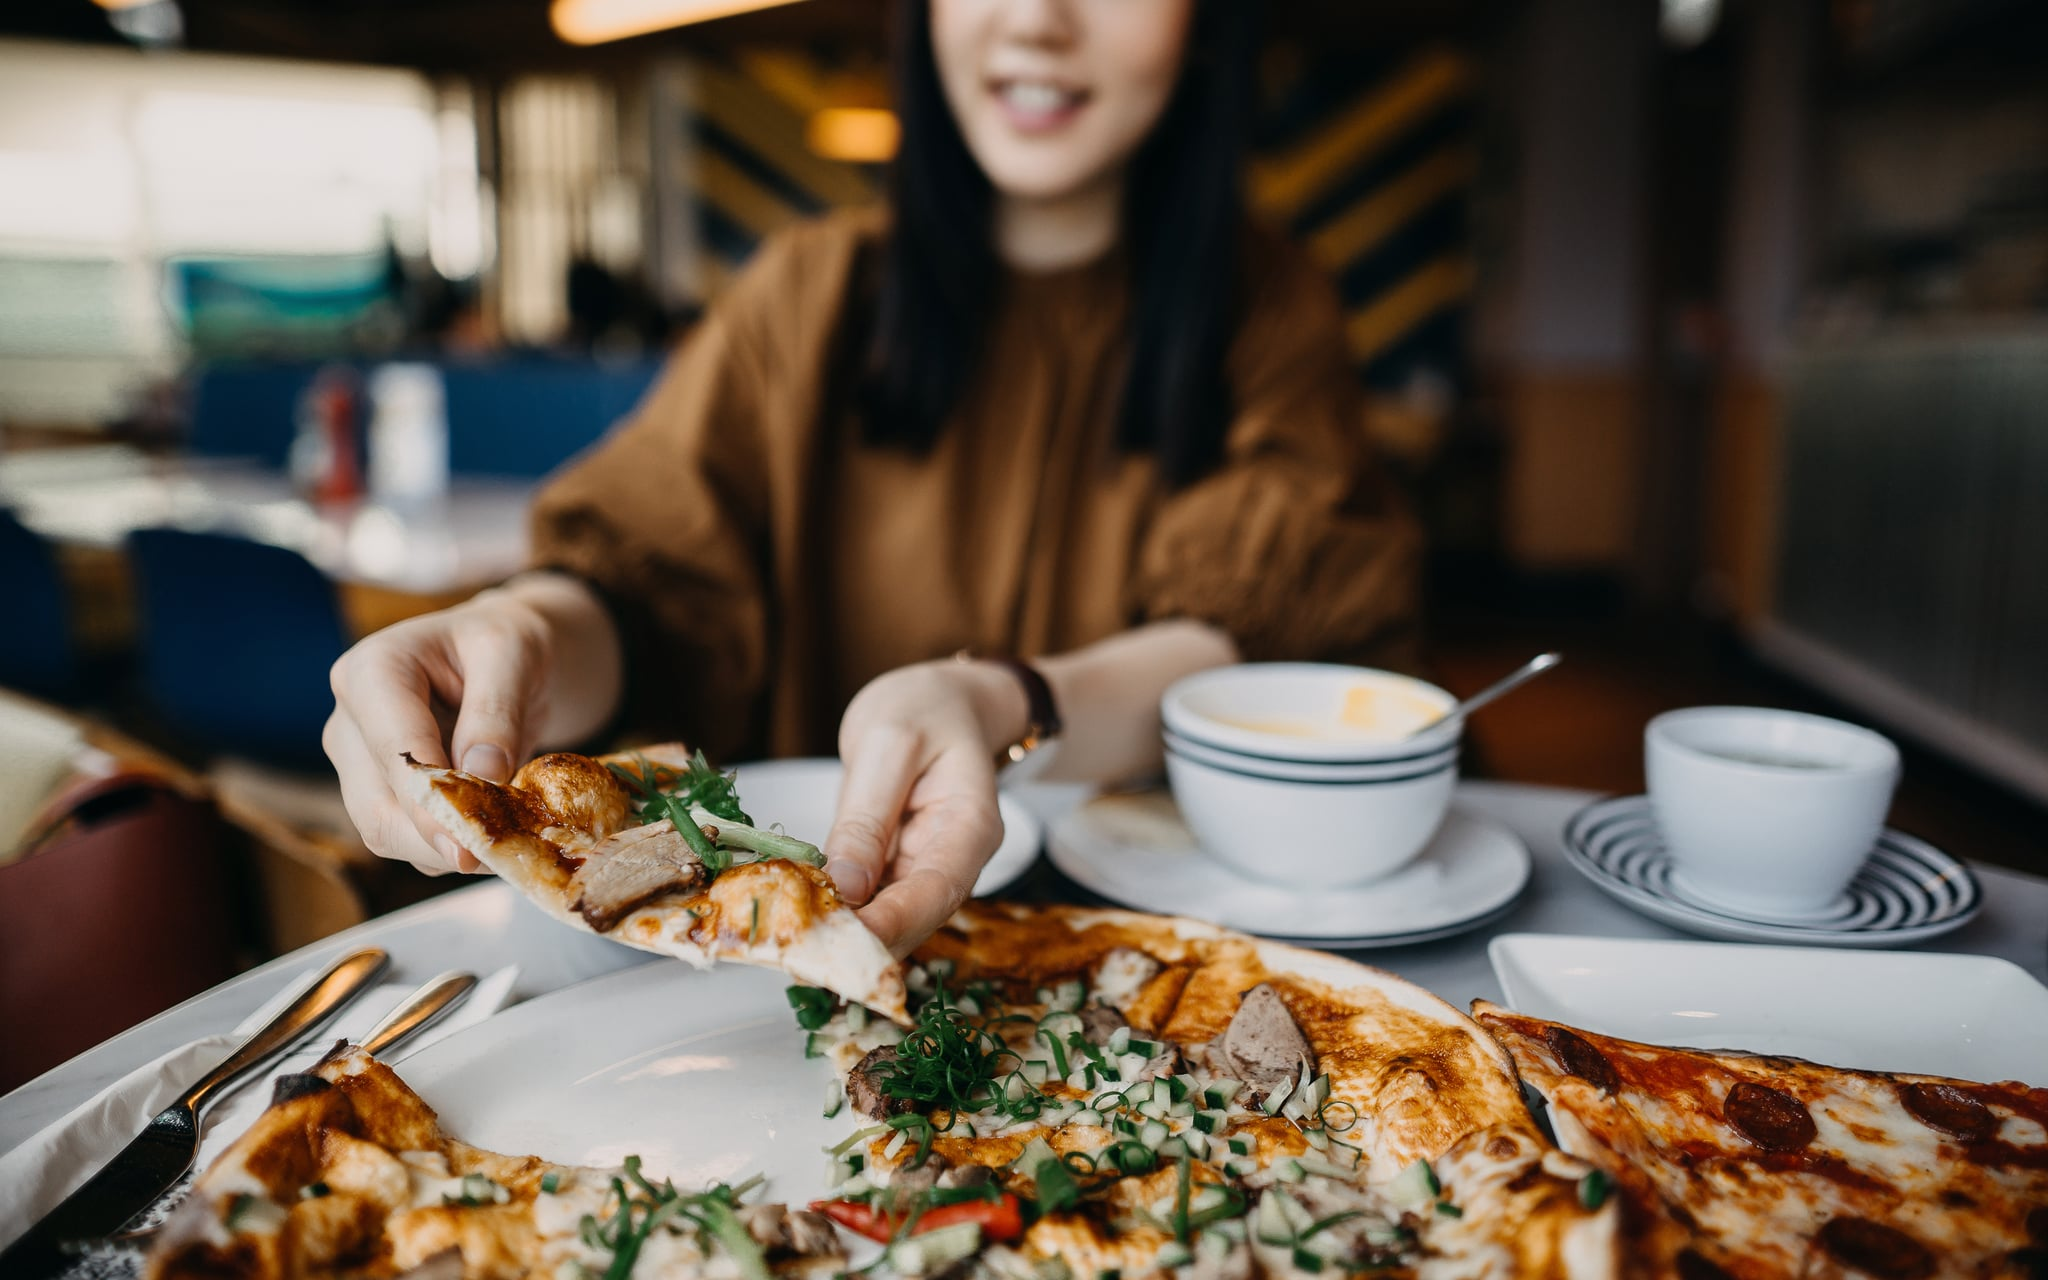 Close up of young woman enjoying meal and eating freshly made pizza in a restaurant